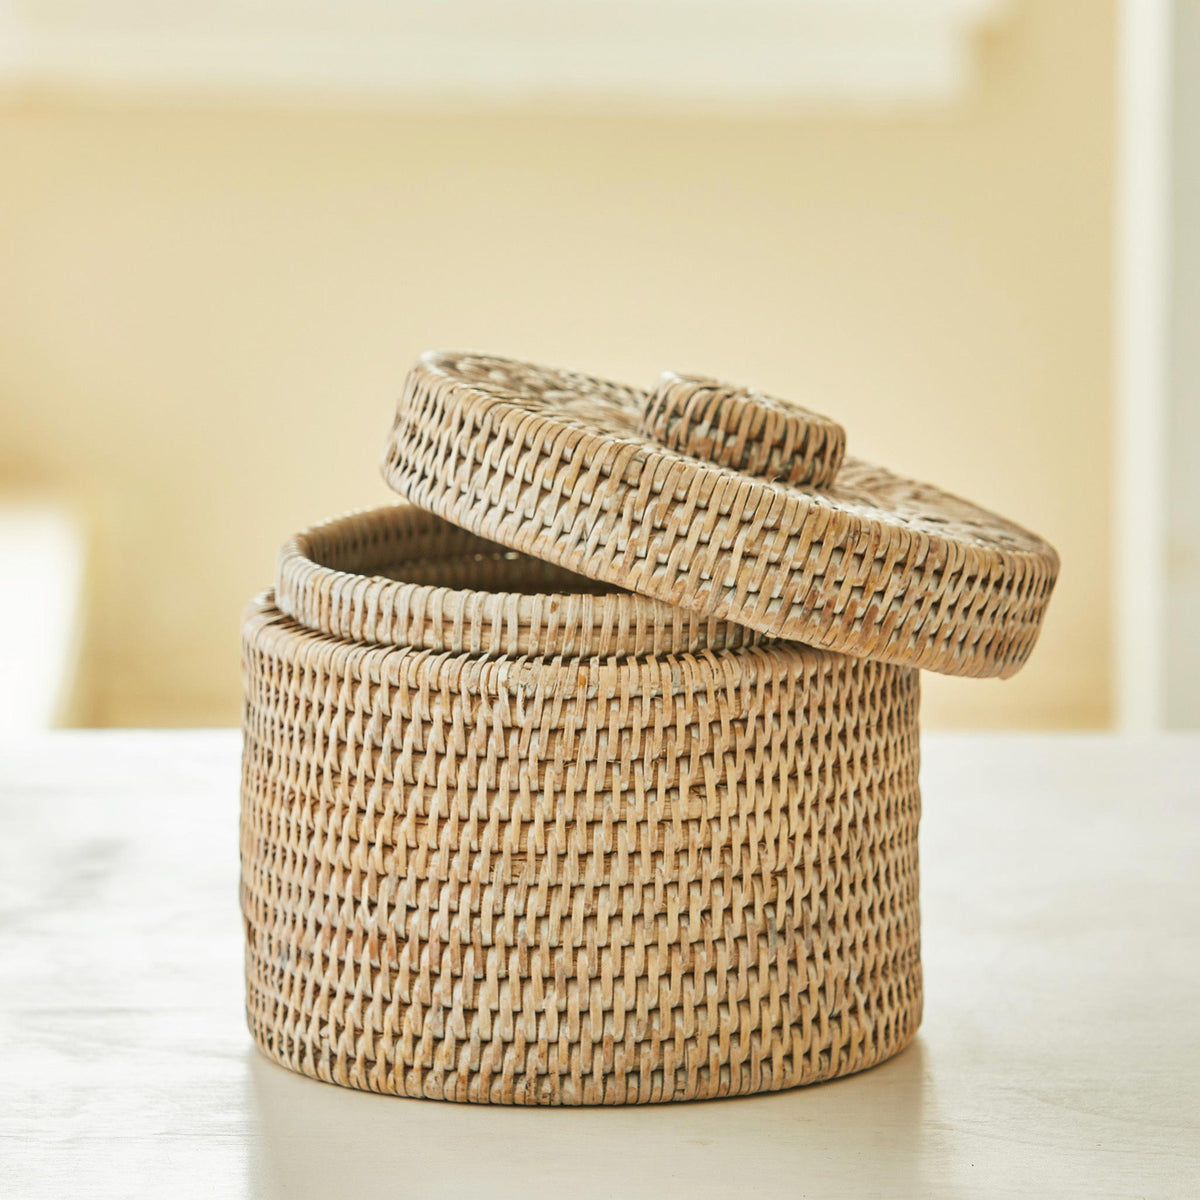 Beautiful Rattan Toilet Roll Holder. Traditional craftsmanship, tough, durable rattan toilet roll storage with lid. Natural and sustainable.